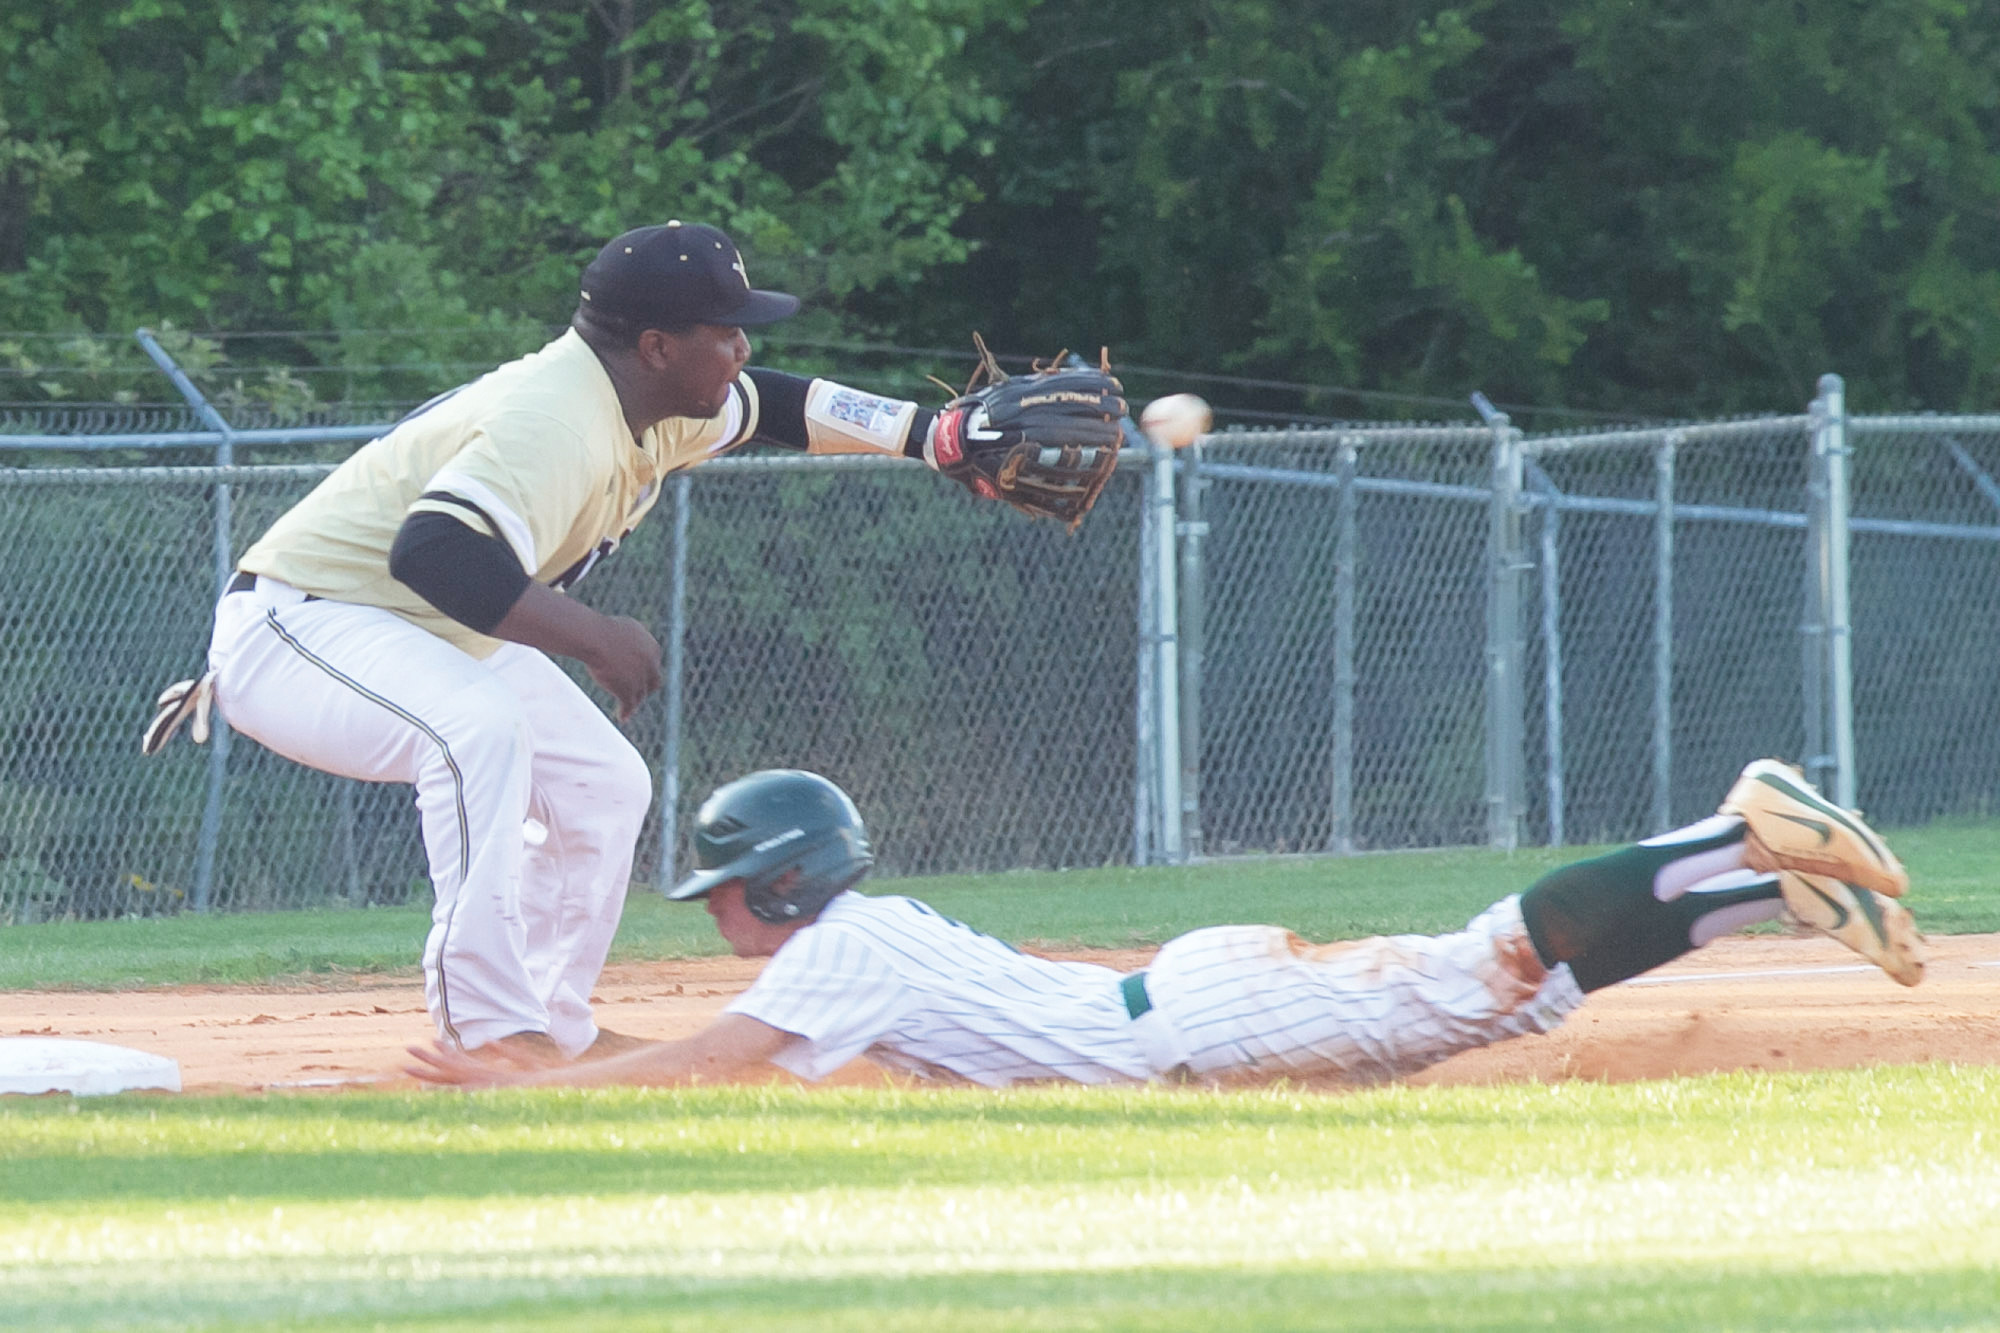 Lakewood's Wyatt Thompson, right, slides into the bag as Manning third baseman Darias Williams takes a throw in the Gators' 10-4 victory on Thursday at the LHS field.